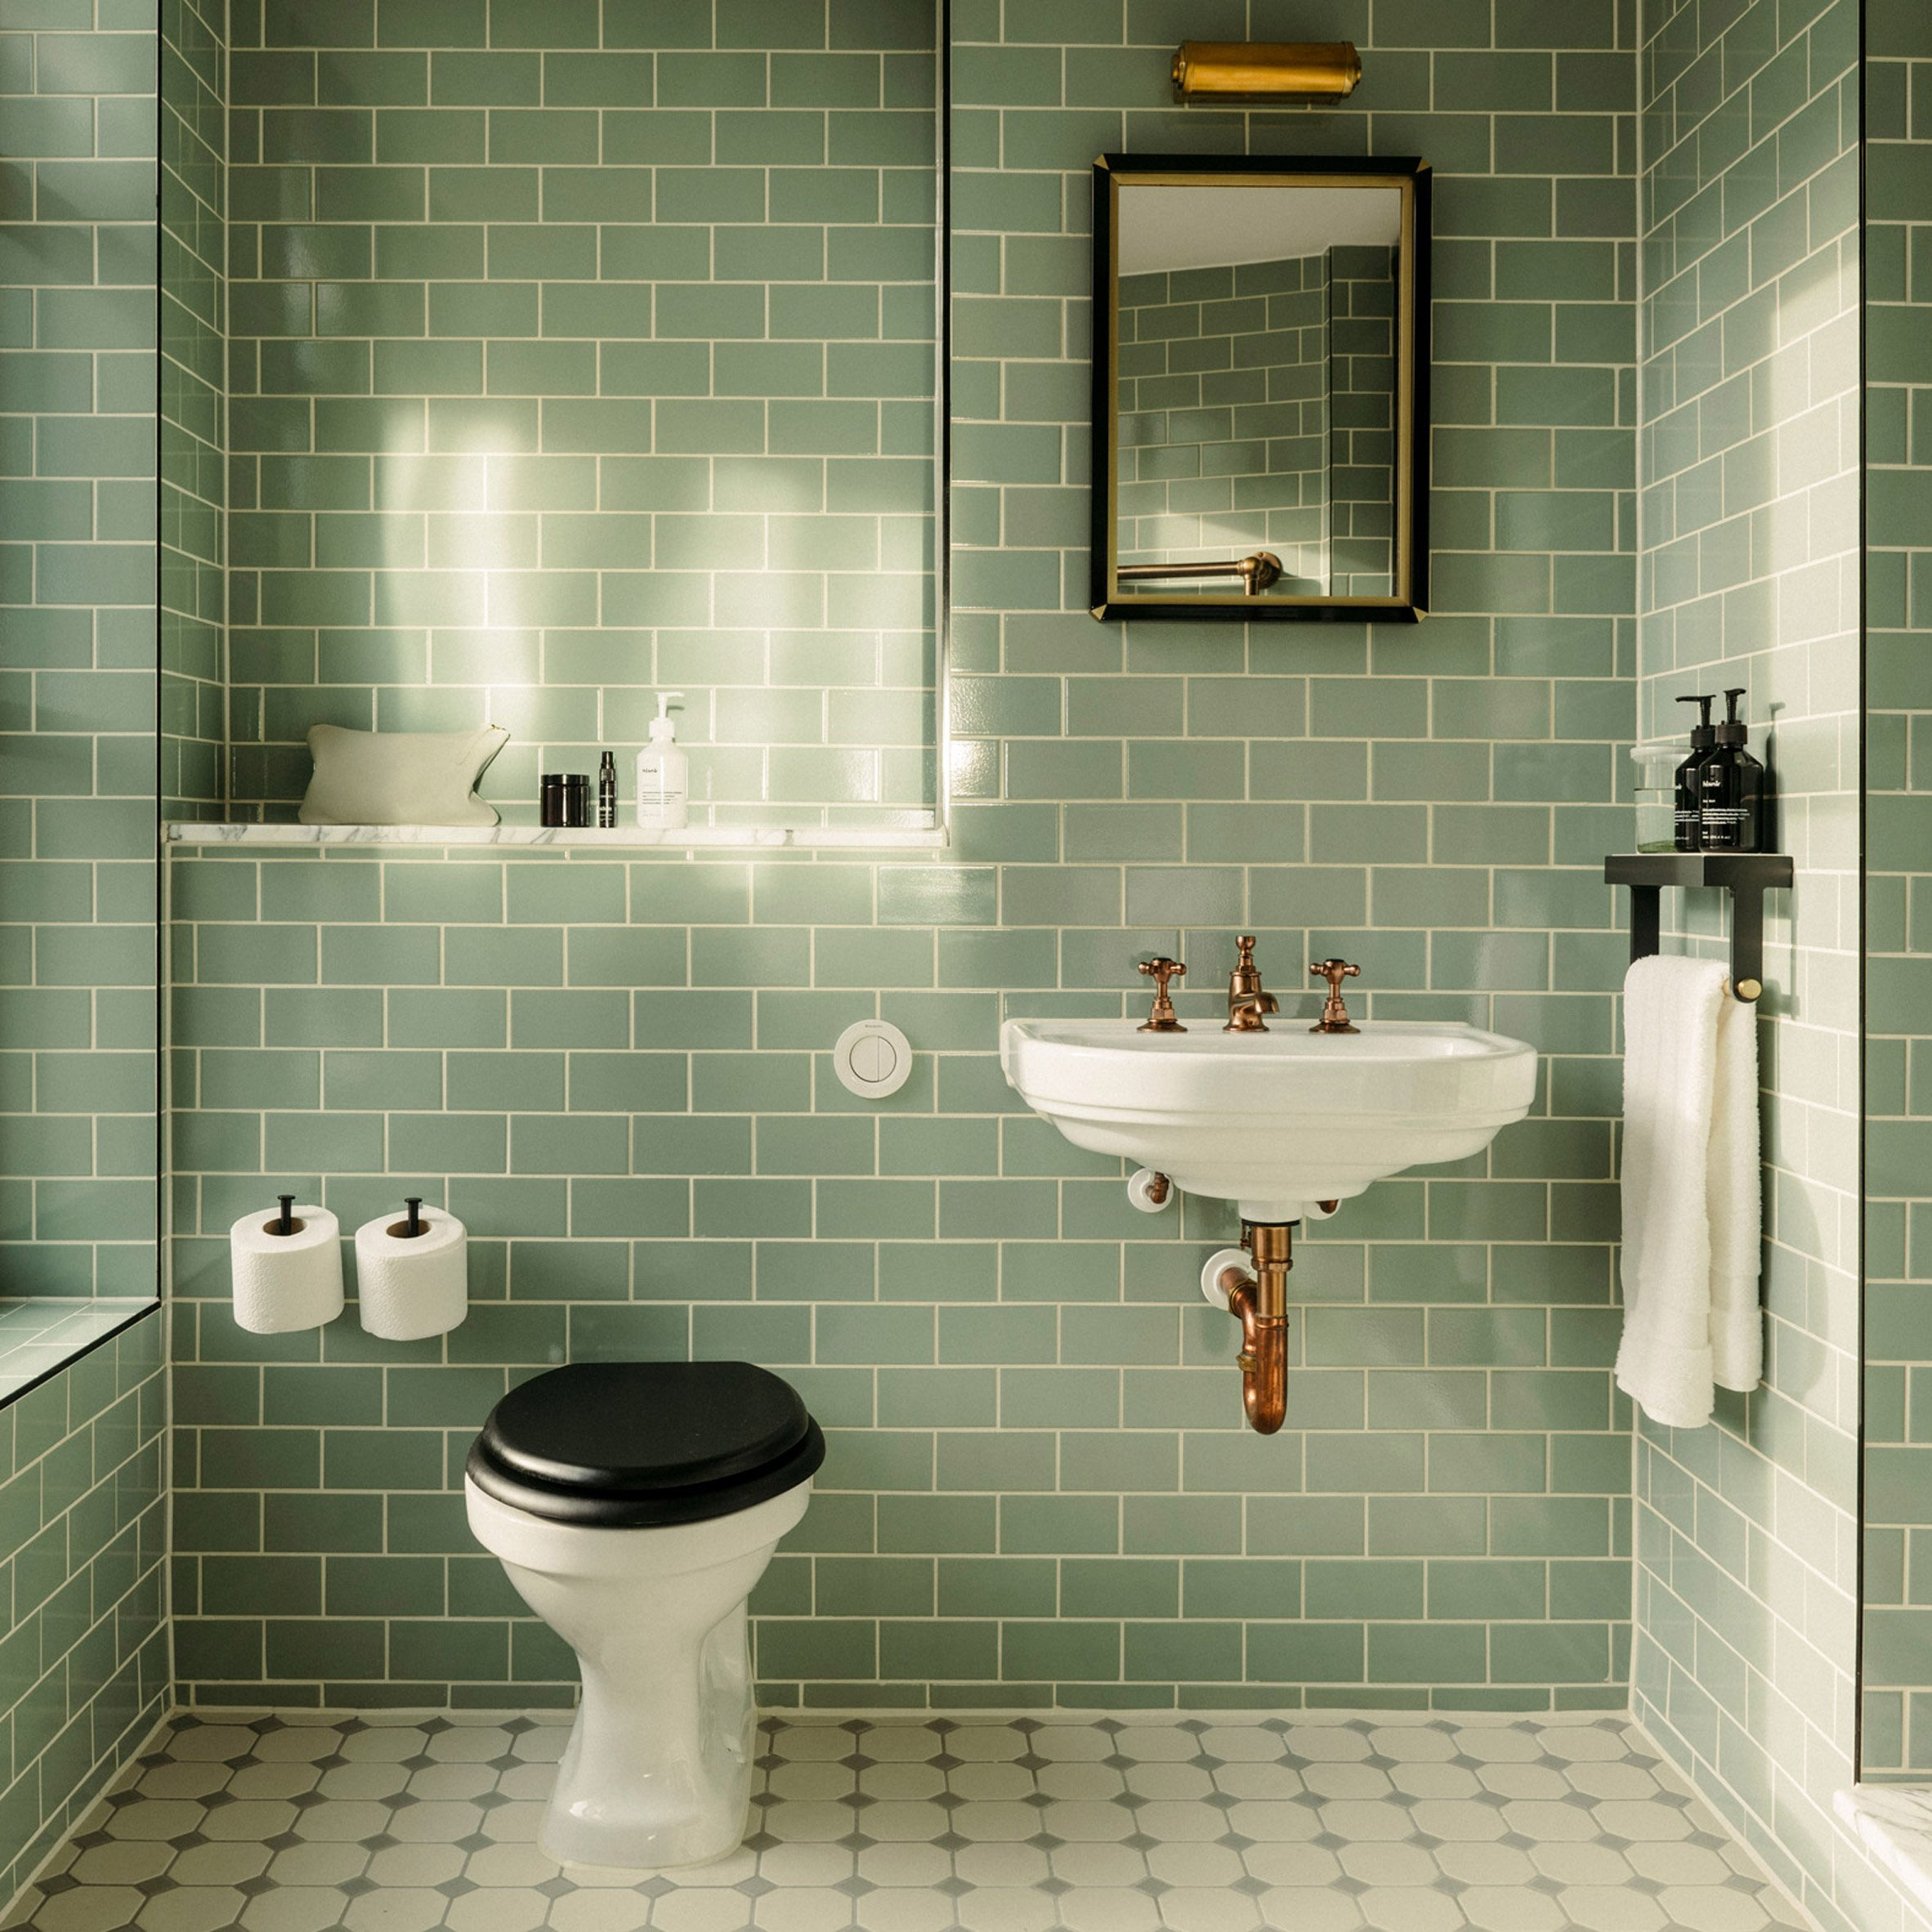 Explore The Latest Bathroom Trends On This Week S Pinterest Board